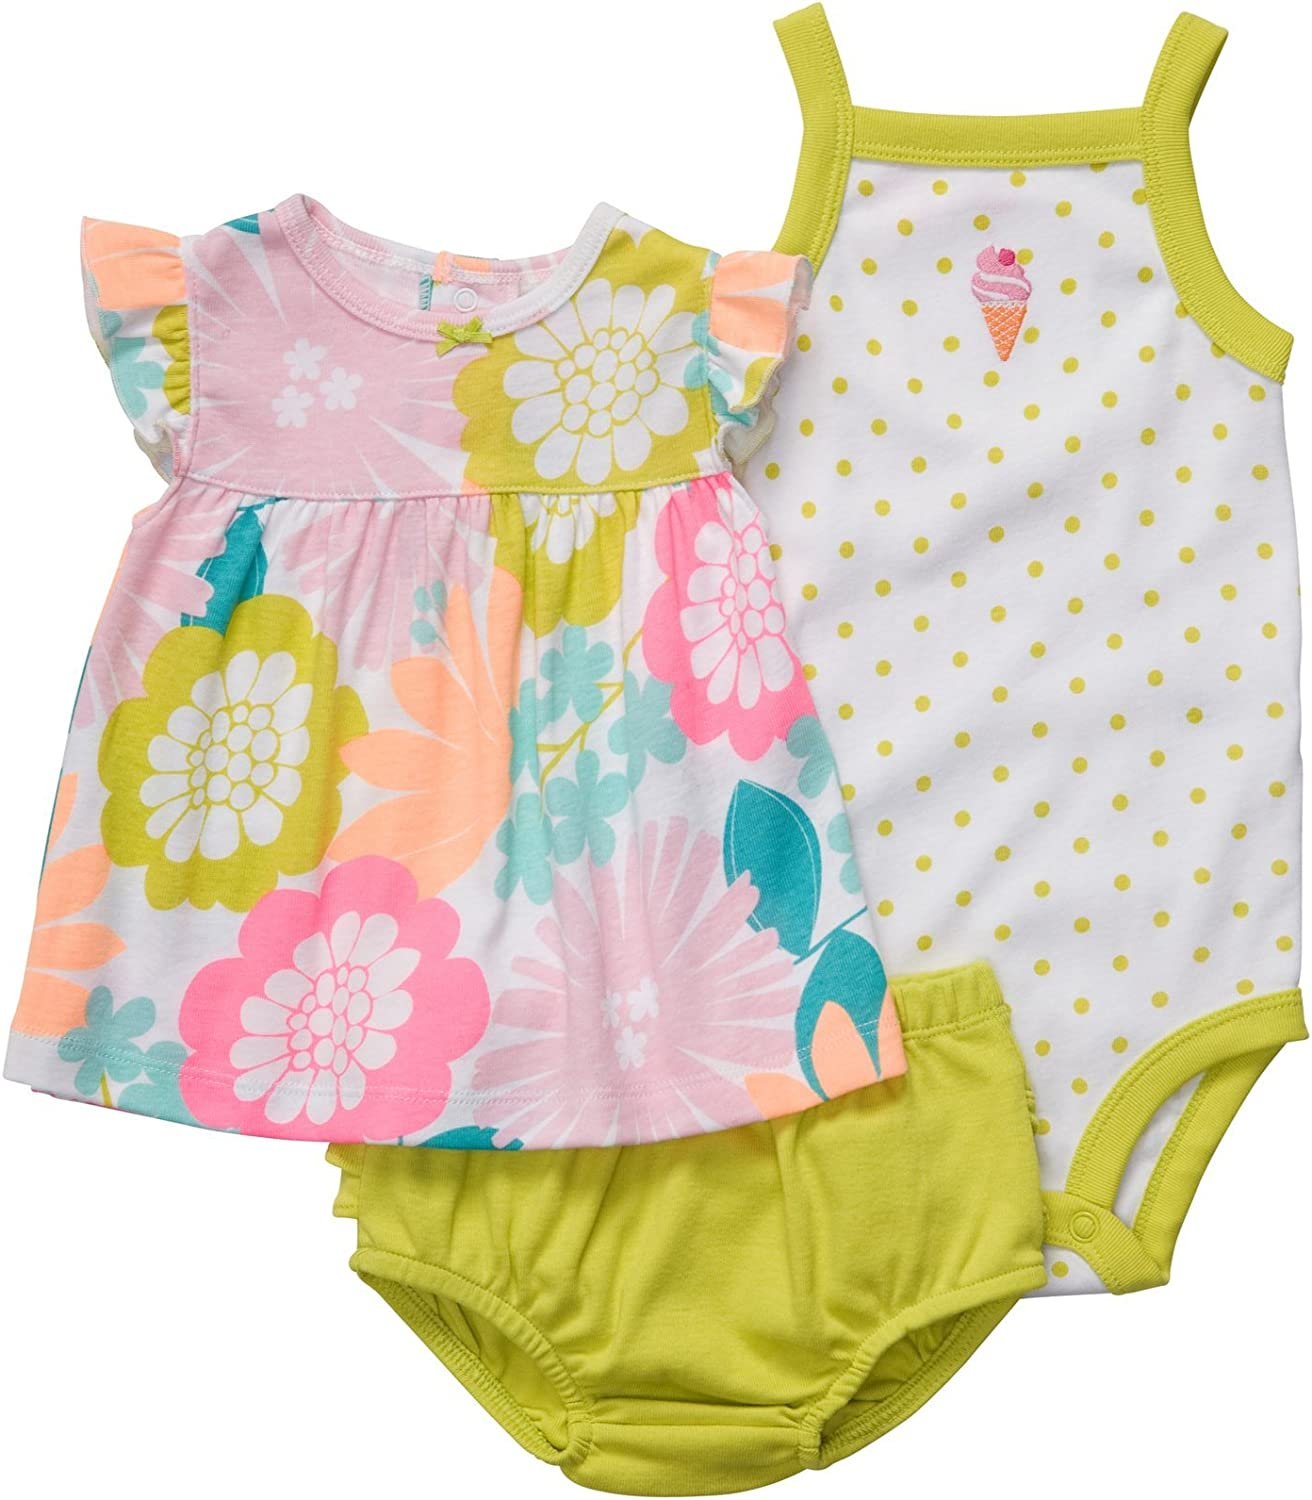 Spring Flowers Carters Baby Girls Oh-So-Fun 3-Piece Set